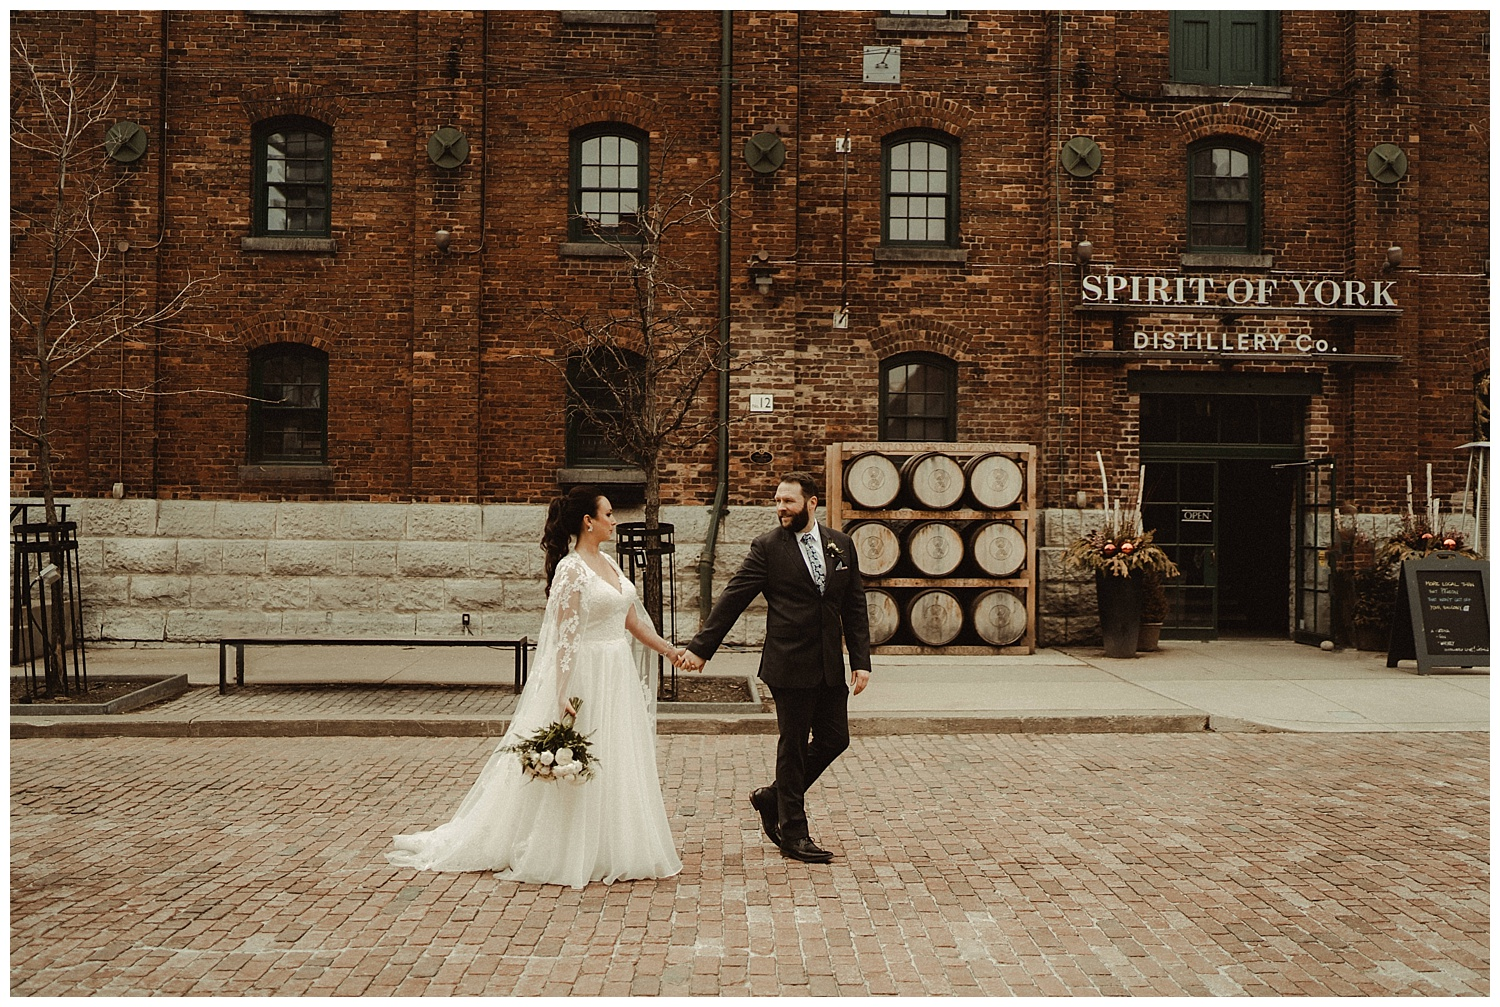 Katie Marie Photography | Archeo Wedding Arta Gallery Wedding | Distillery District Wedding | Toronto Wedding Photographer | Hamilton Toronto Ontario Wedding Photographer |_0049.jpg